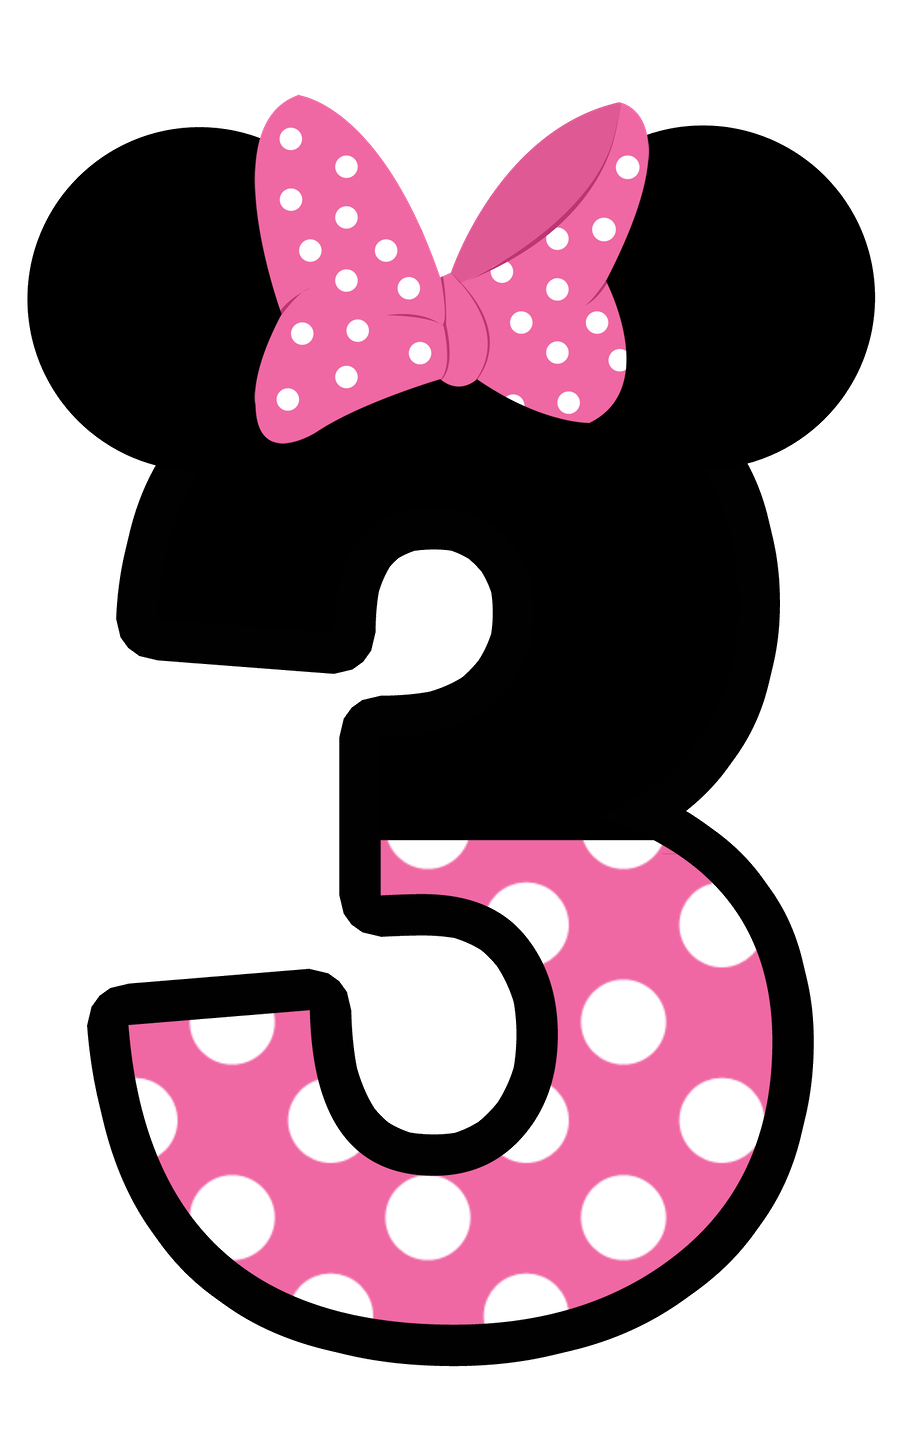 Minnie mouse background polka dots png. Numbers pinterest mice and